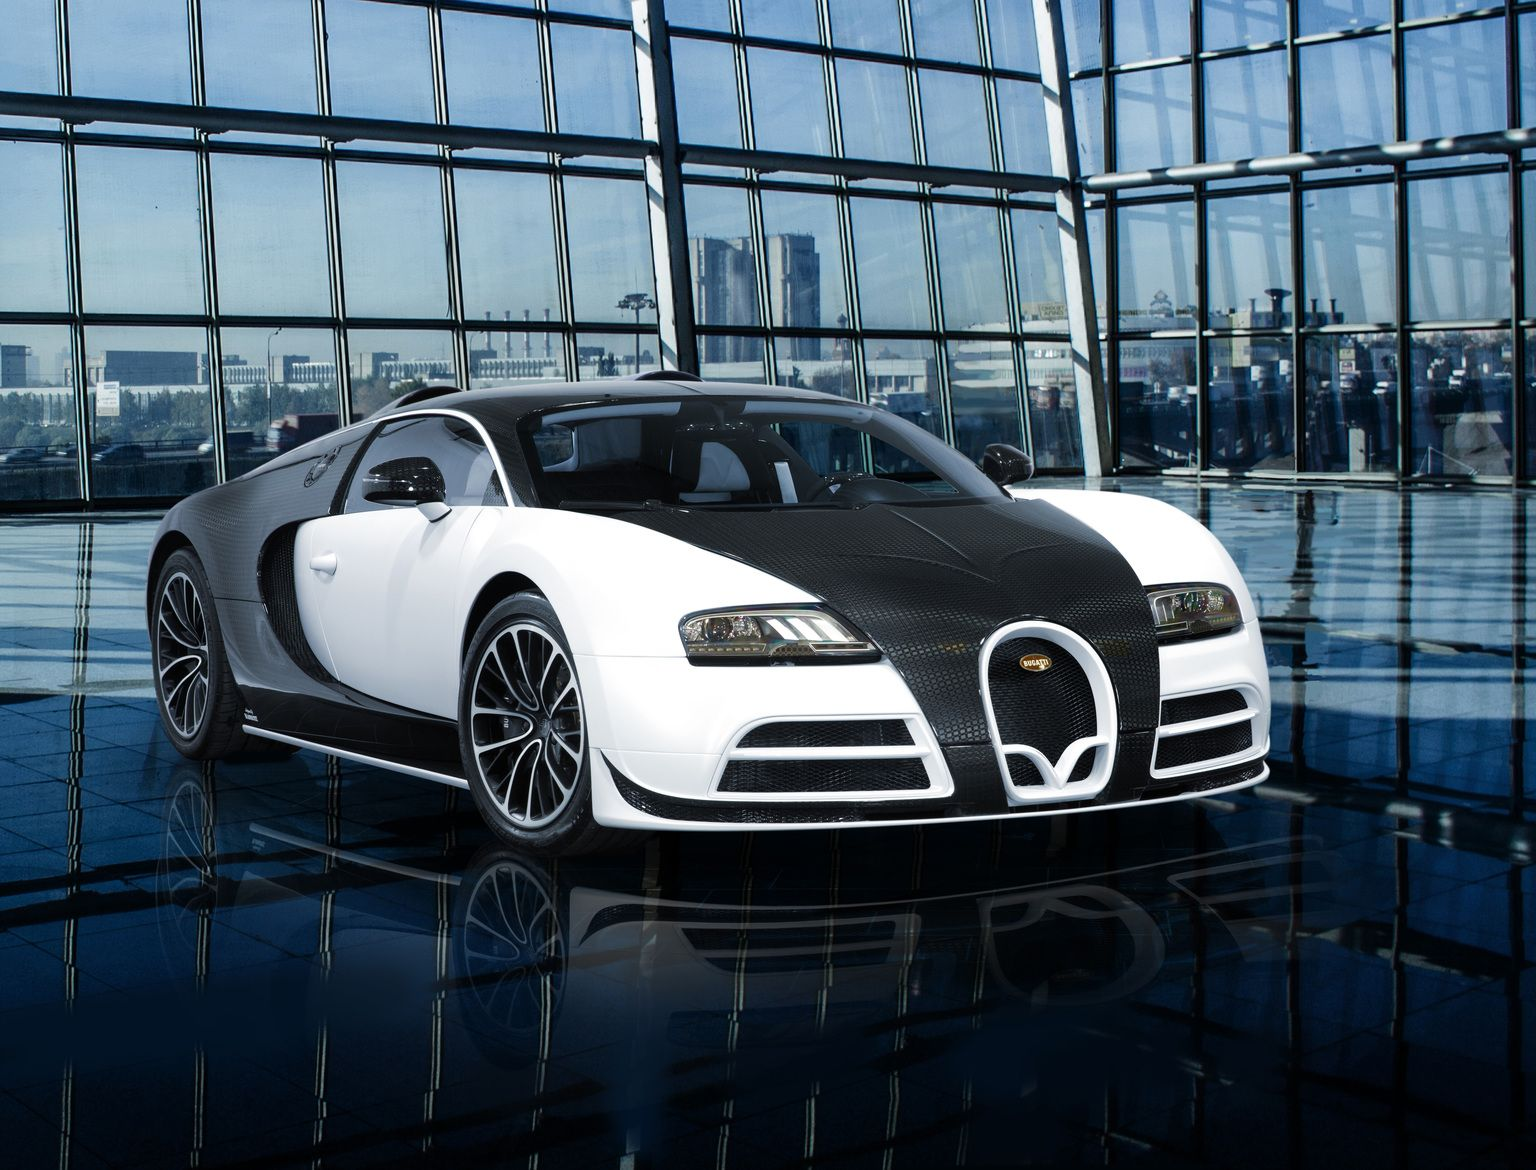 50 Fastest Supercars By Top Speed Bugatti Veyron Car In The